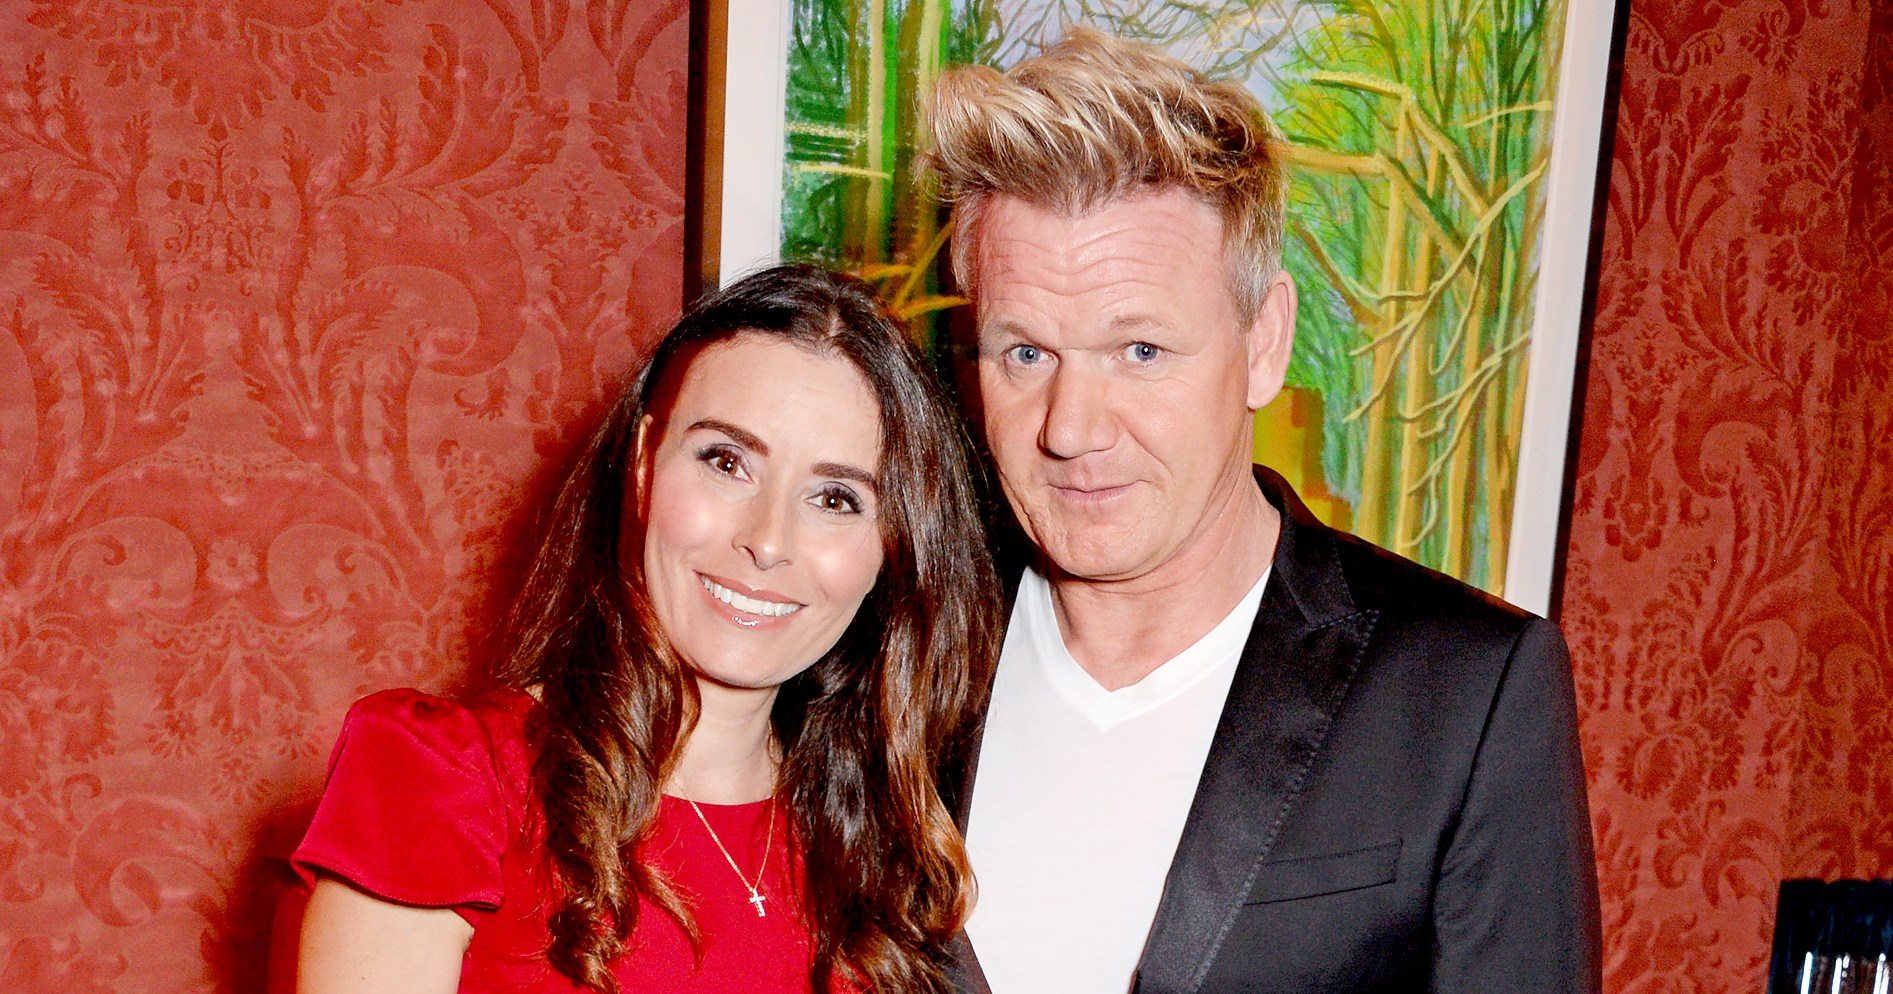 Gordon Ramsay and Wife Tana Expecting Fifth Child After Miscarriage